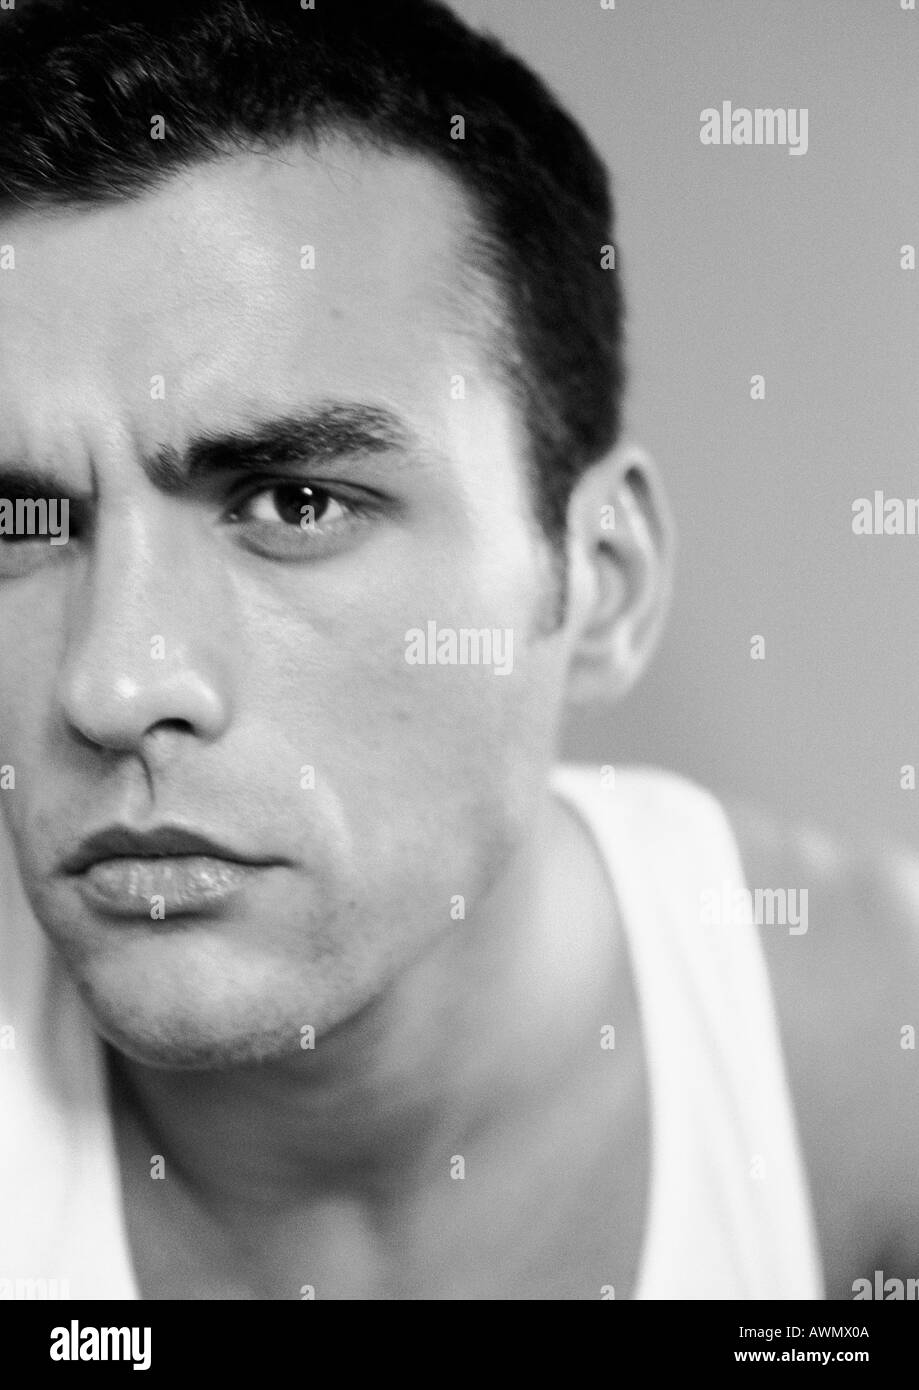 Man's head, partial view, close-up, black and white. - Stock Image